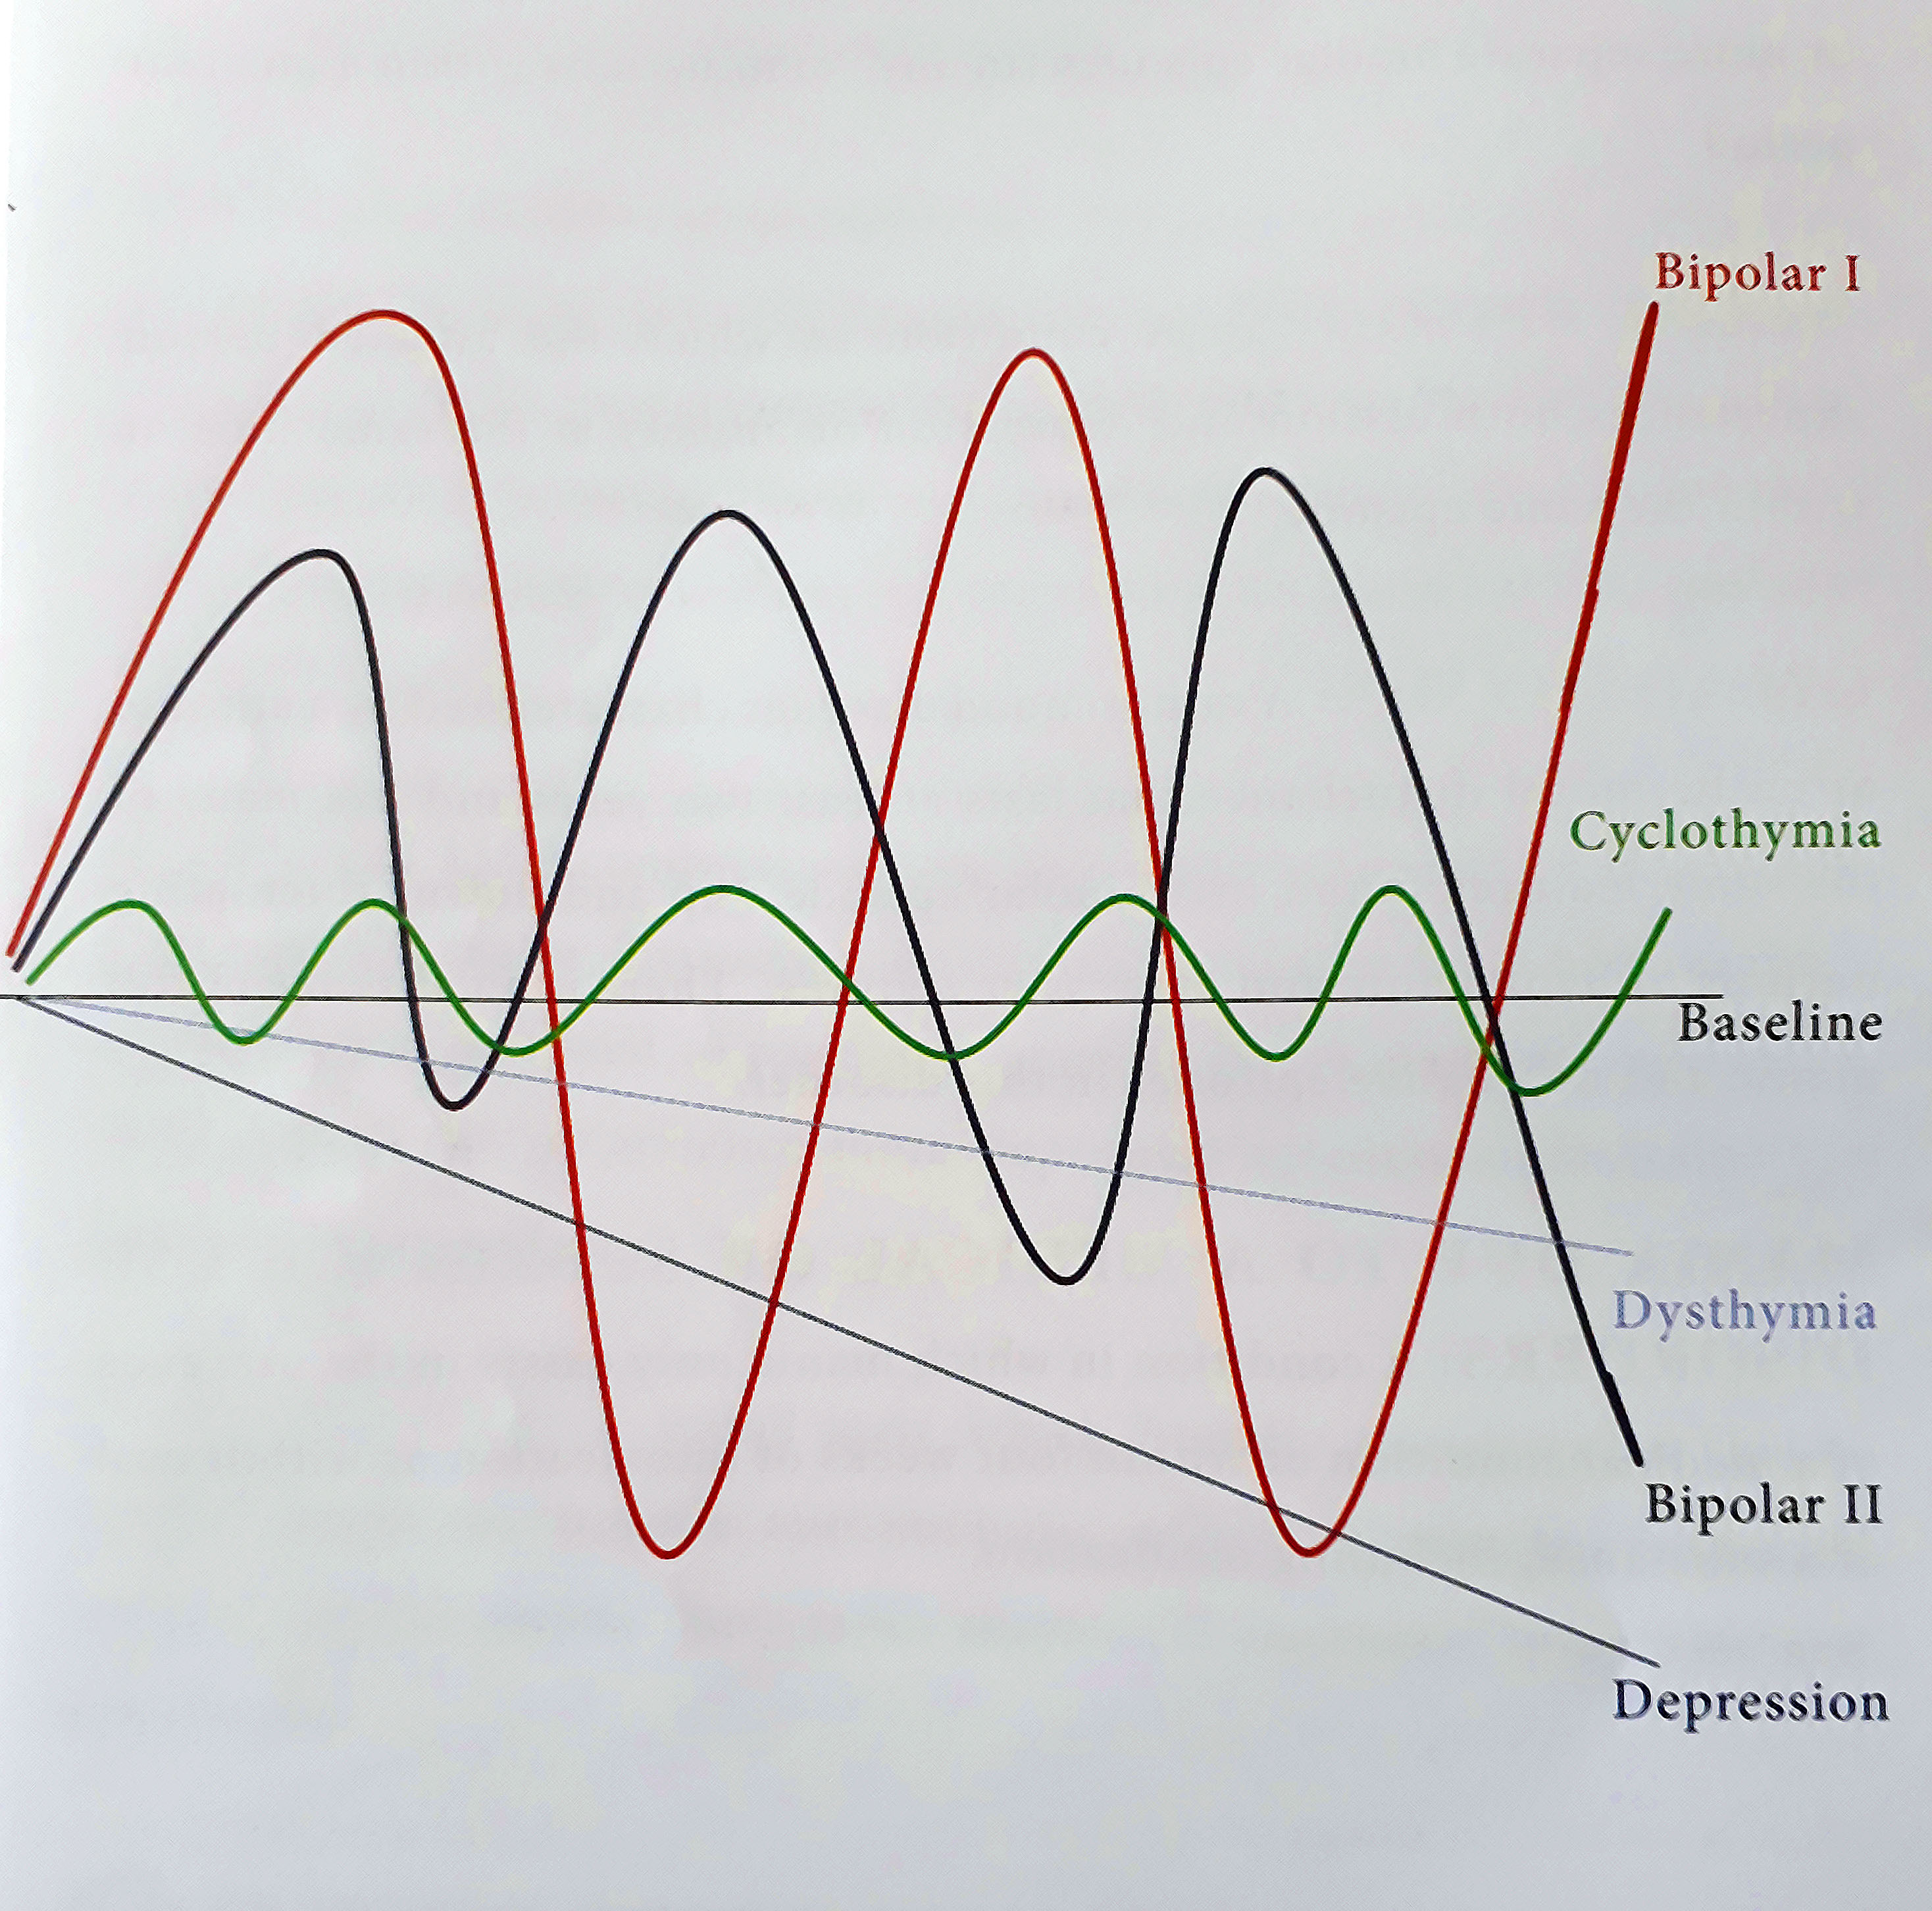 The above graph is a pictorial representation of the affective symptoms or  mood states of common clinical mood disorders.